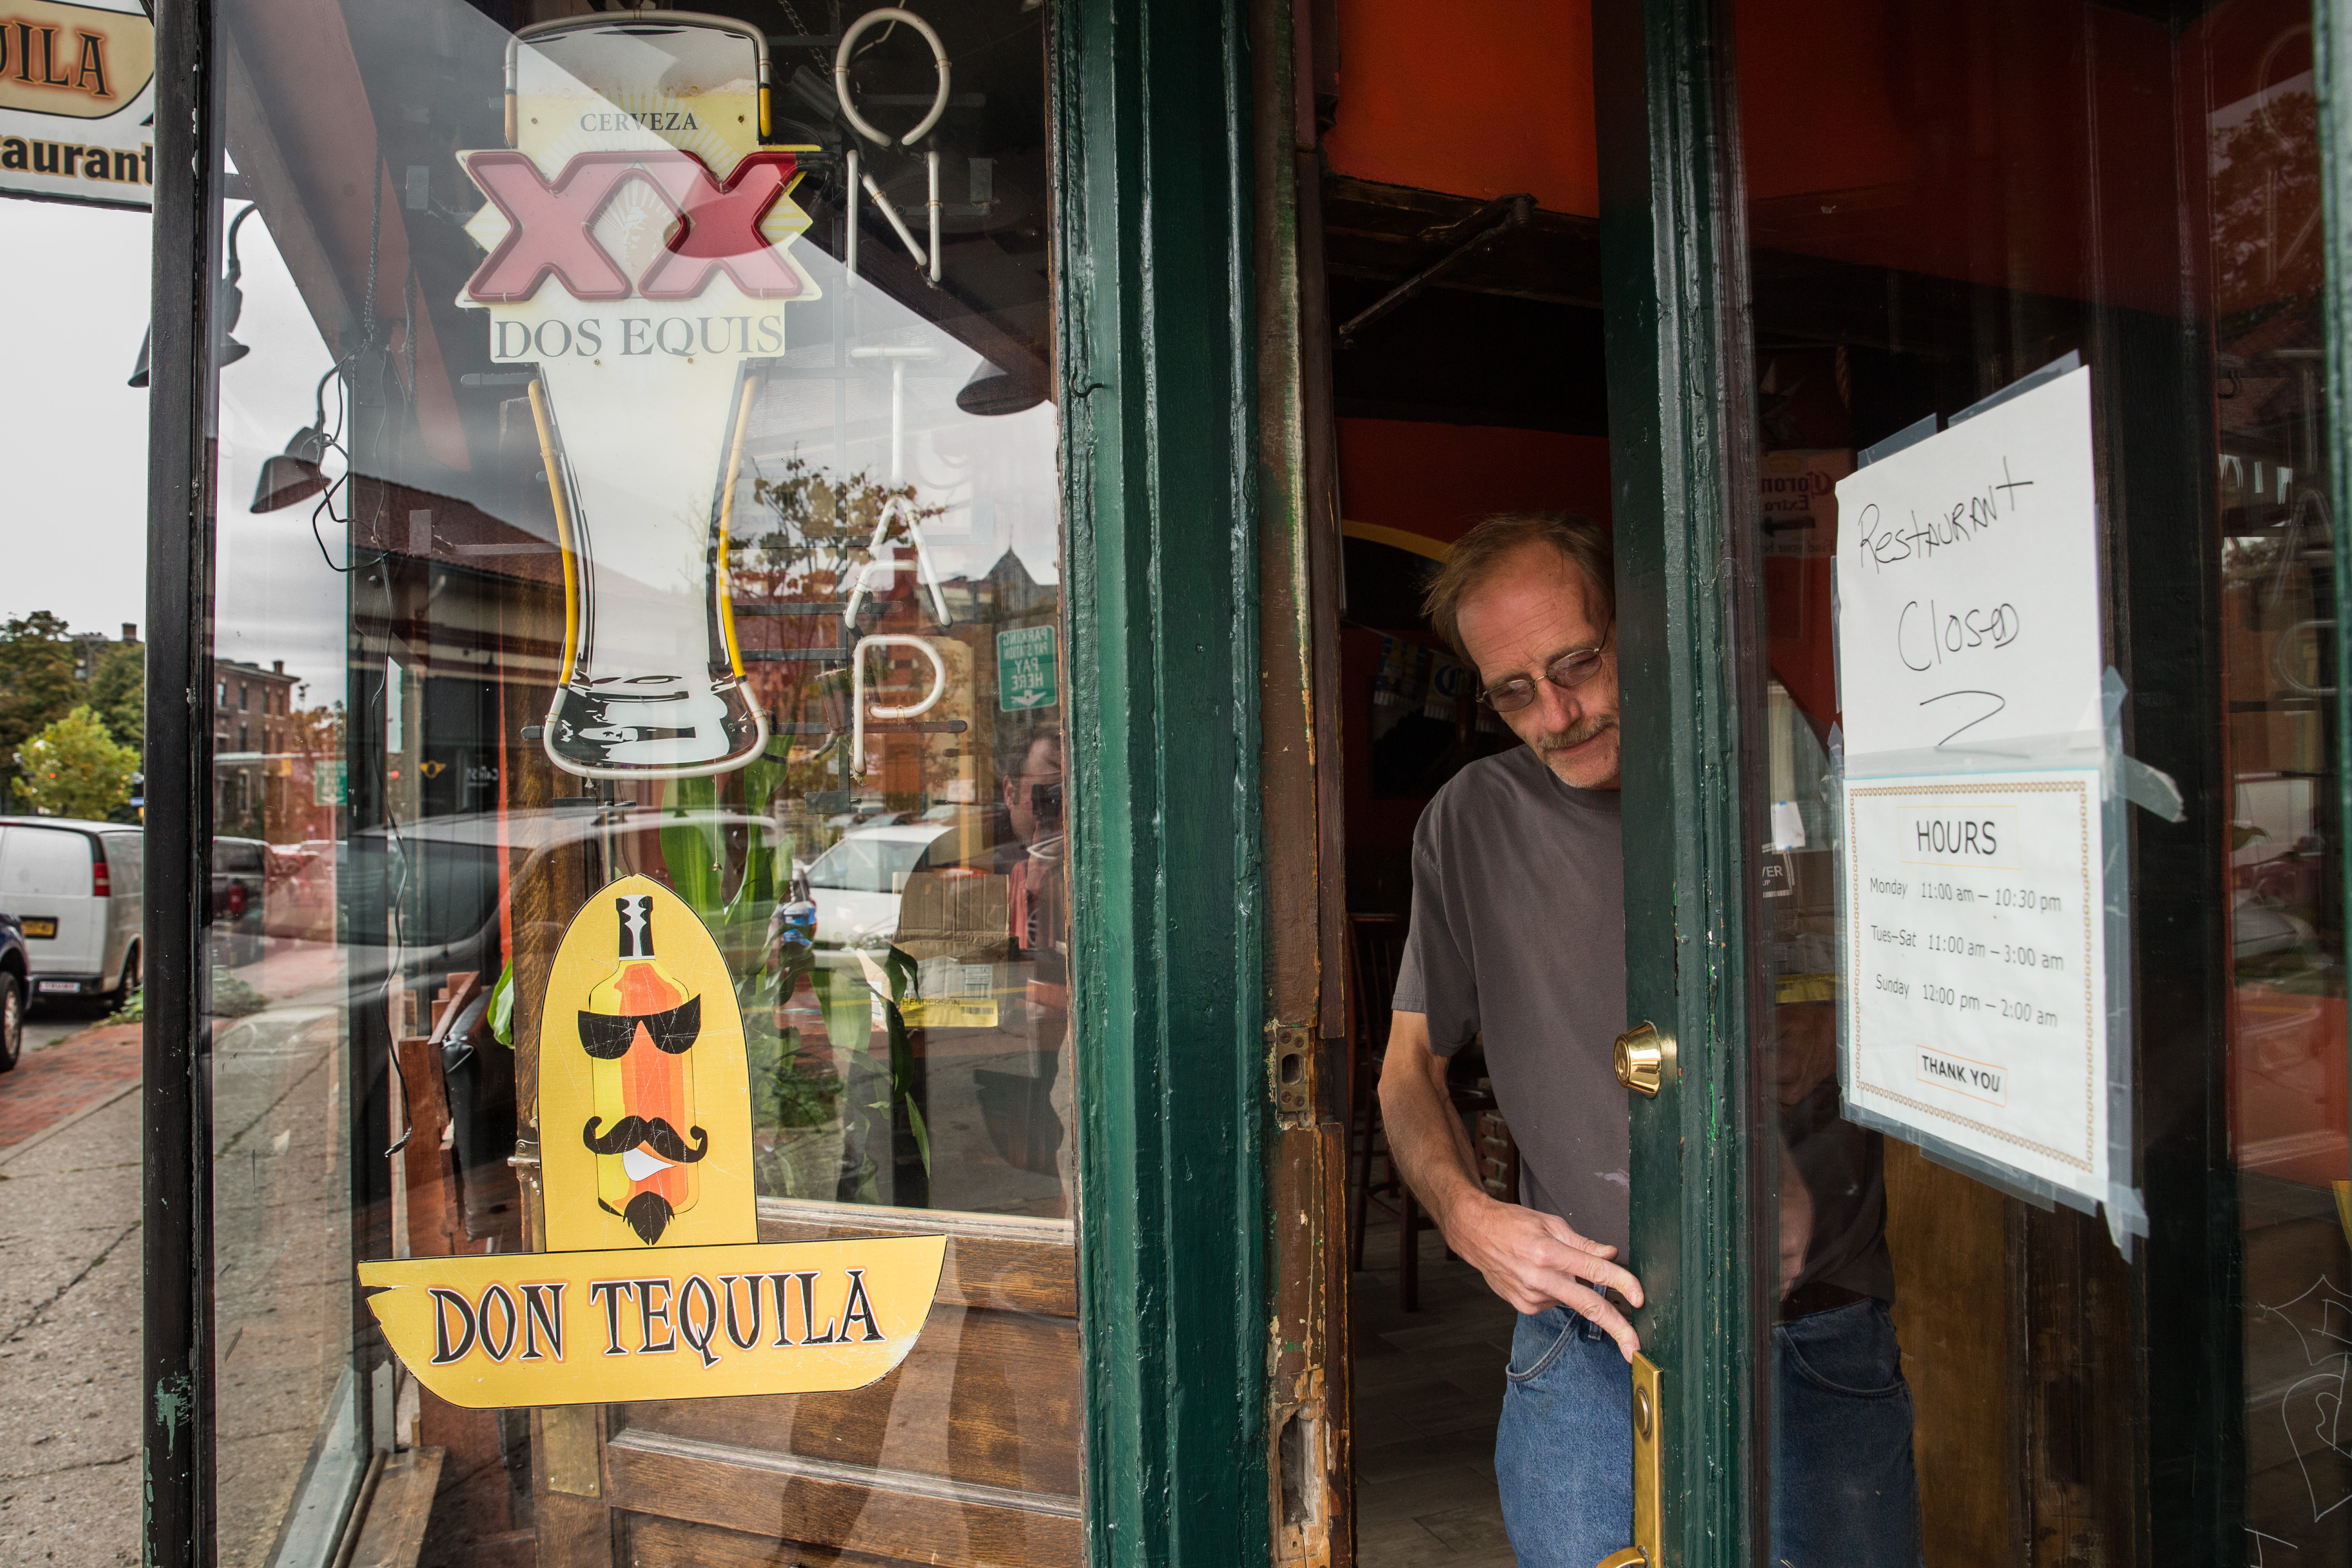 A representative of the building's owner changes the locks on the Don Tequila restaurant on Allen Street in Buffalo, which is closed following a law enforcement raid of the restaurant and several others for immigration issues, Tuesday, Oct. 18, 2016. (Derek Gee/Buffalo News)